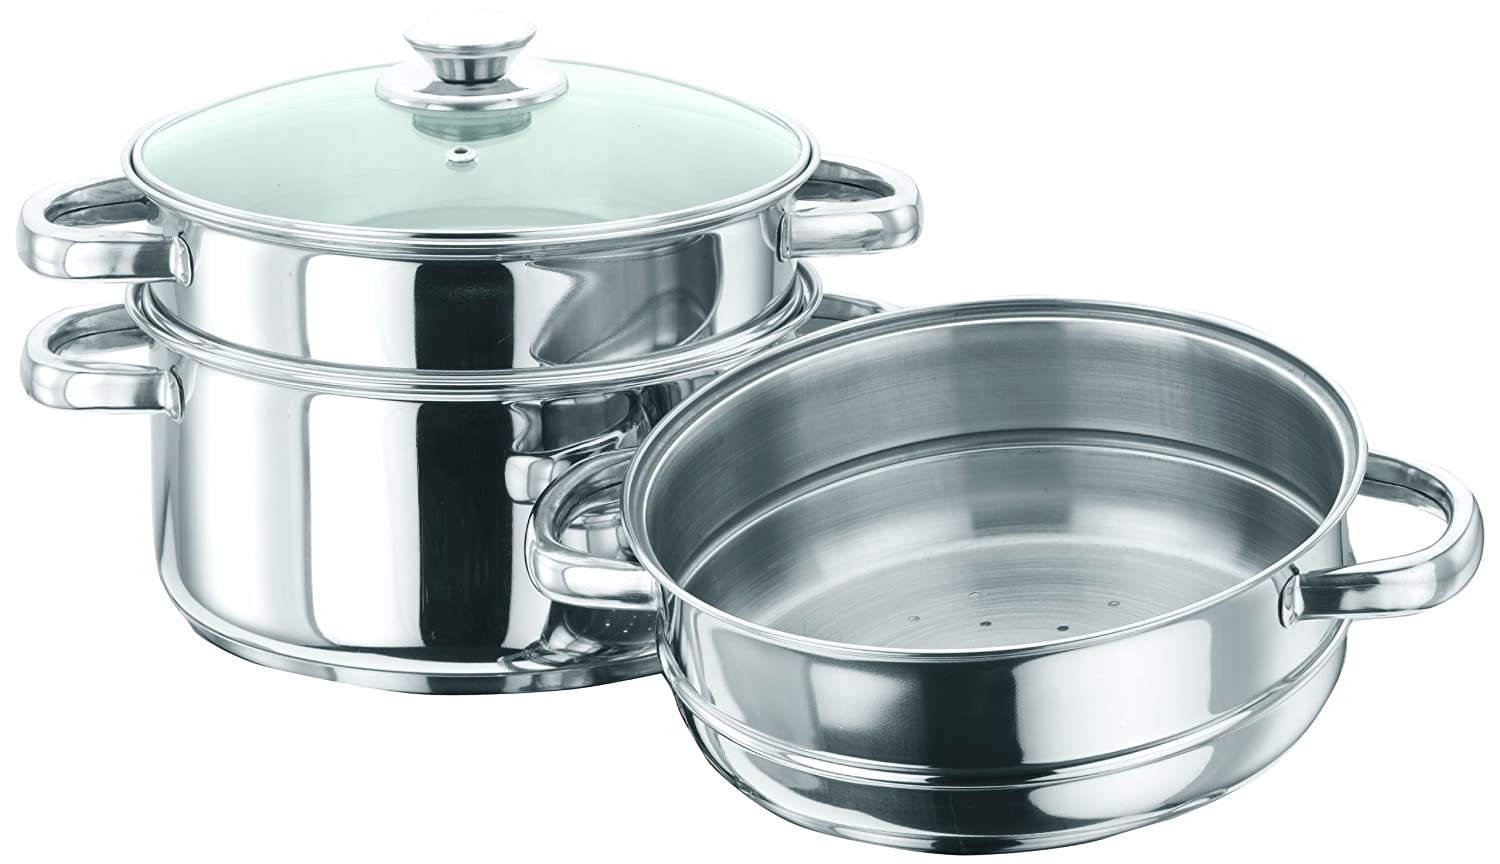 Buy Vinod Cookware 3 Tier Steamer, 20cm Online at Low Prices in ...